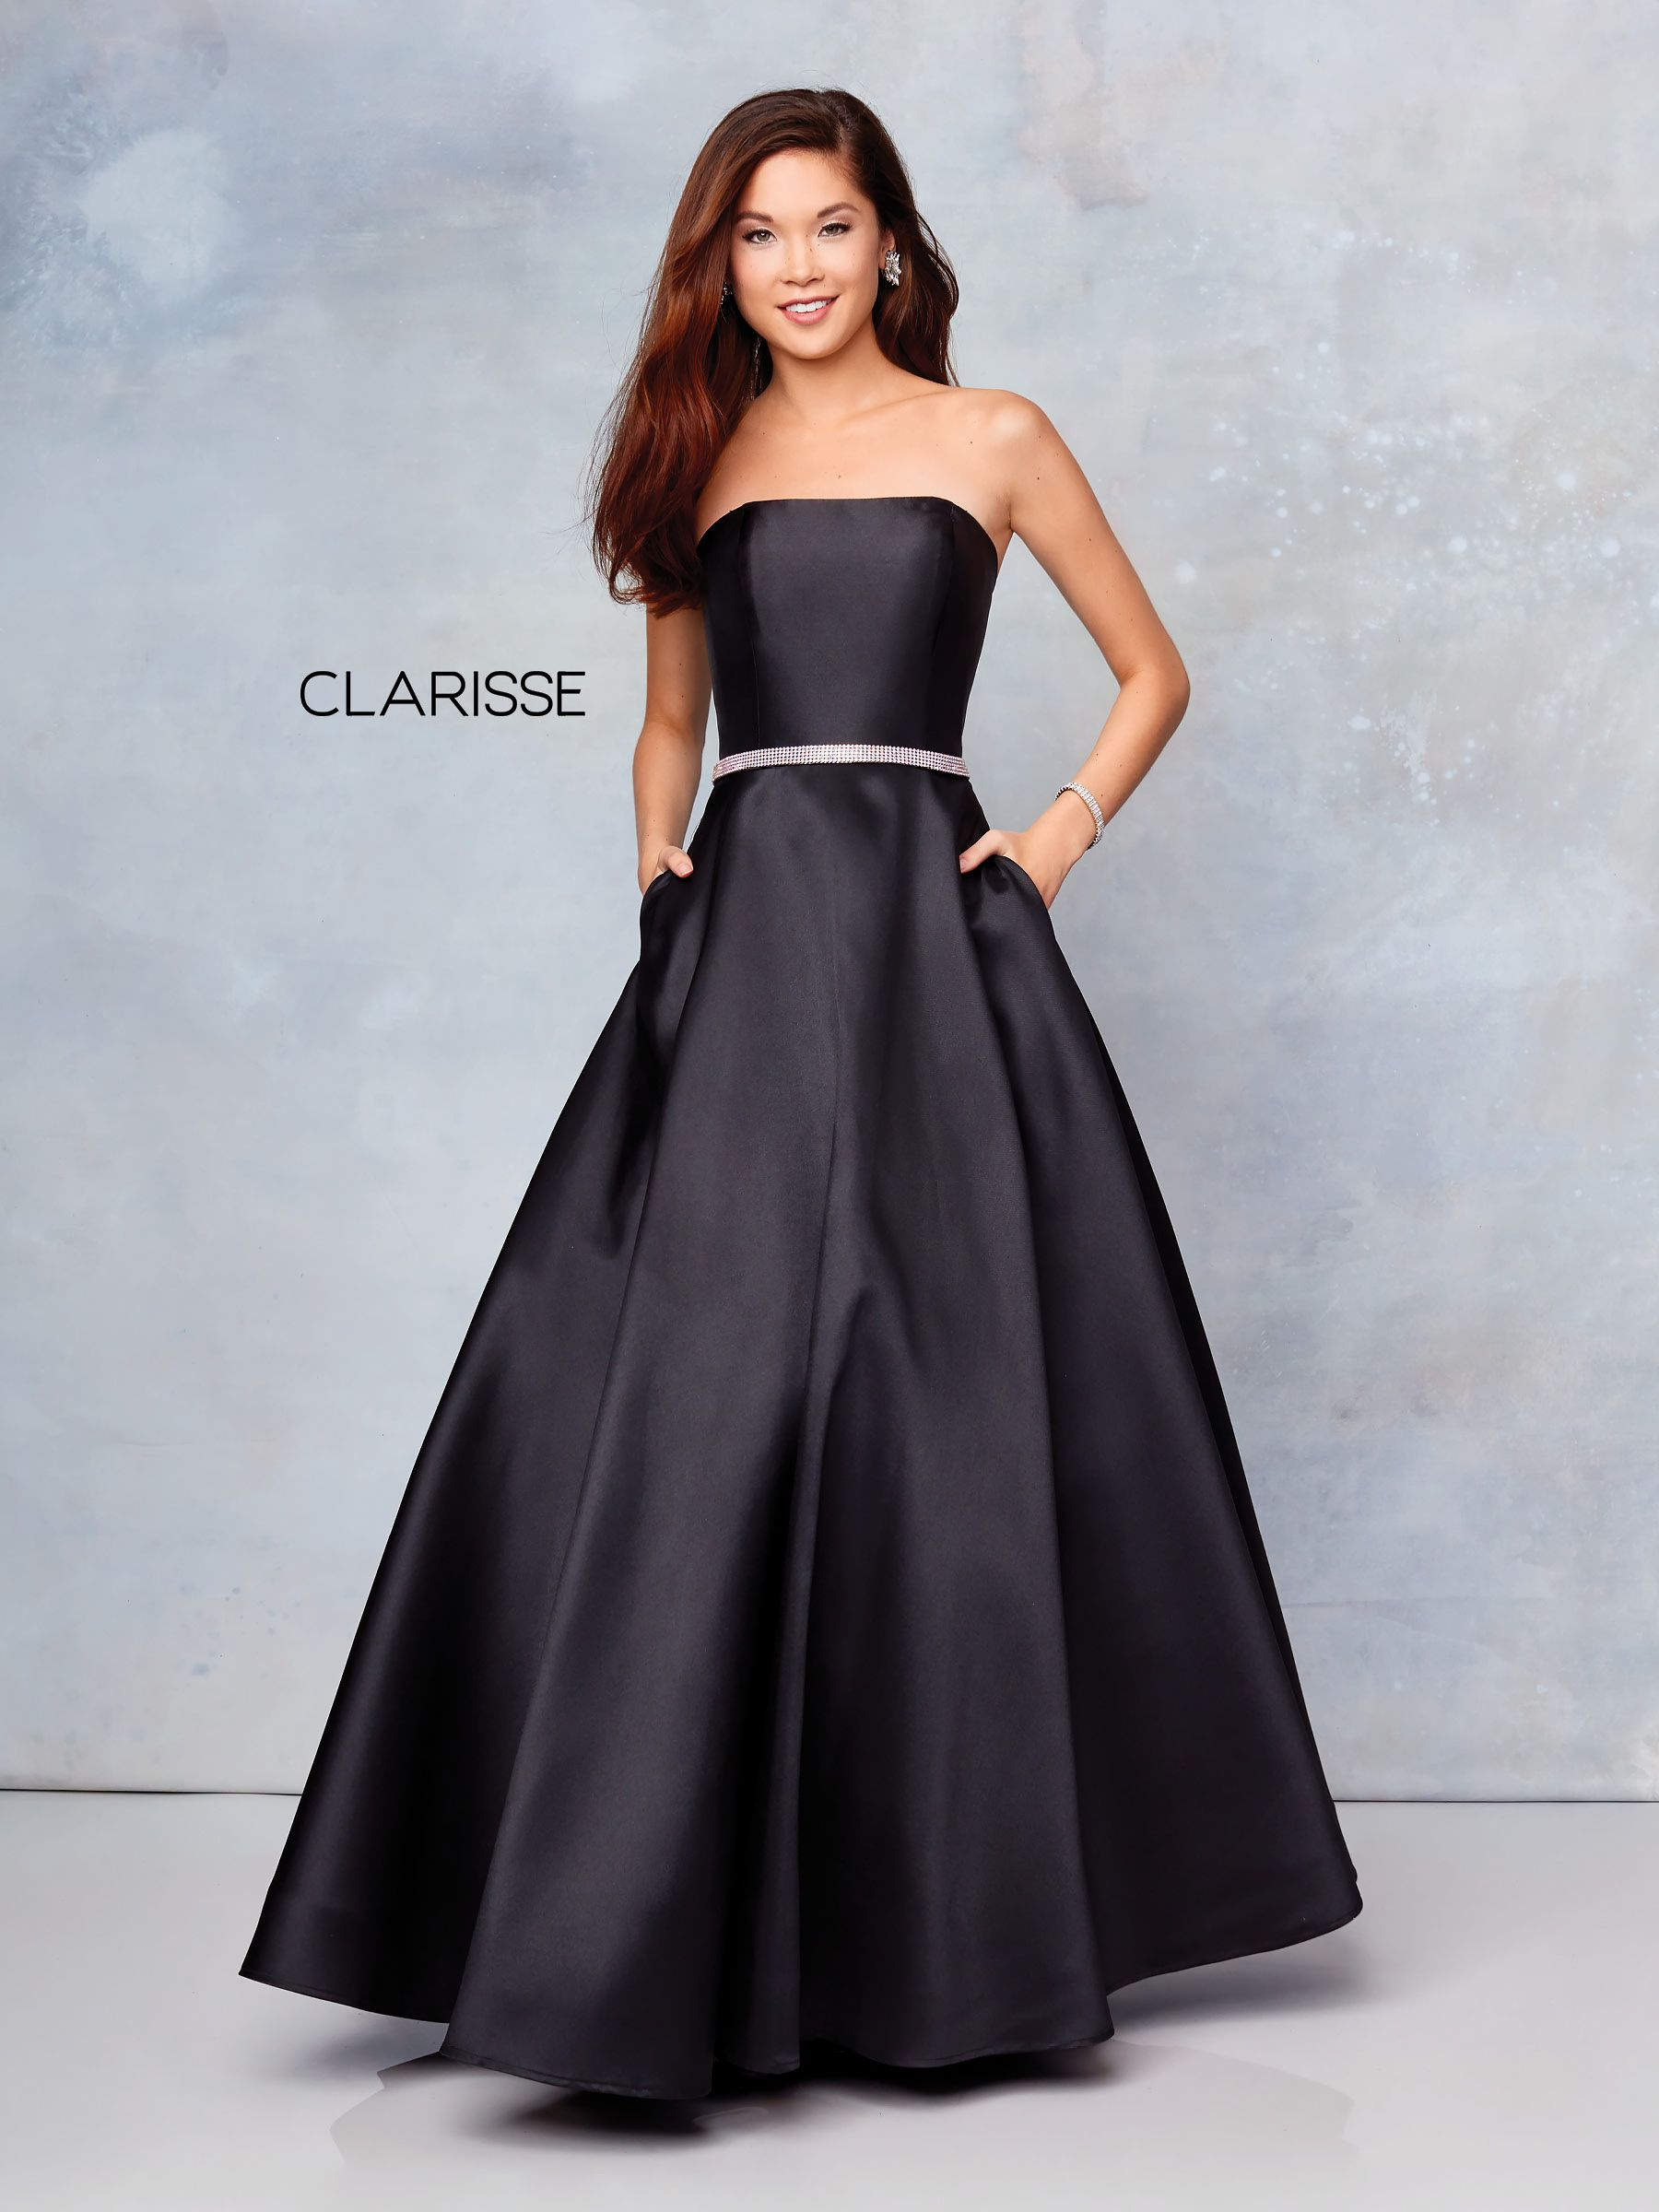 3739 Black Mikado Strapless Prom Ball Gown With A Detailed Belt Prom Dresses With Pockets Gowns Black Prom Dresses [ 2400 x 1800 Pixel ]